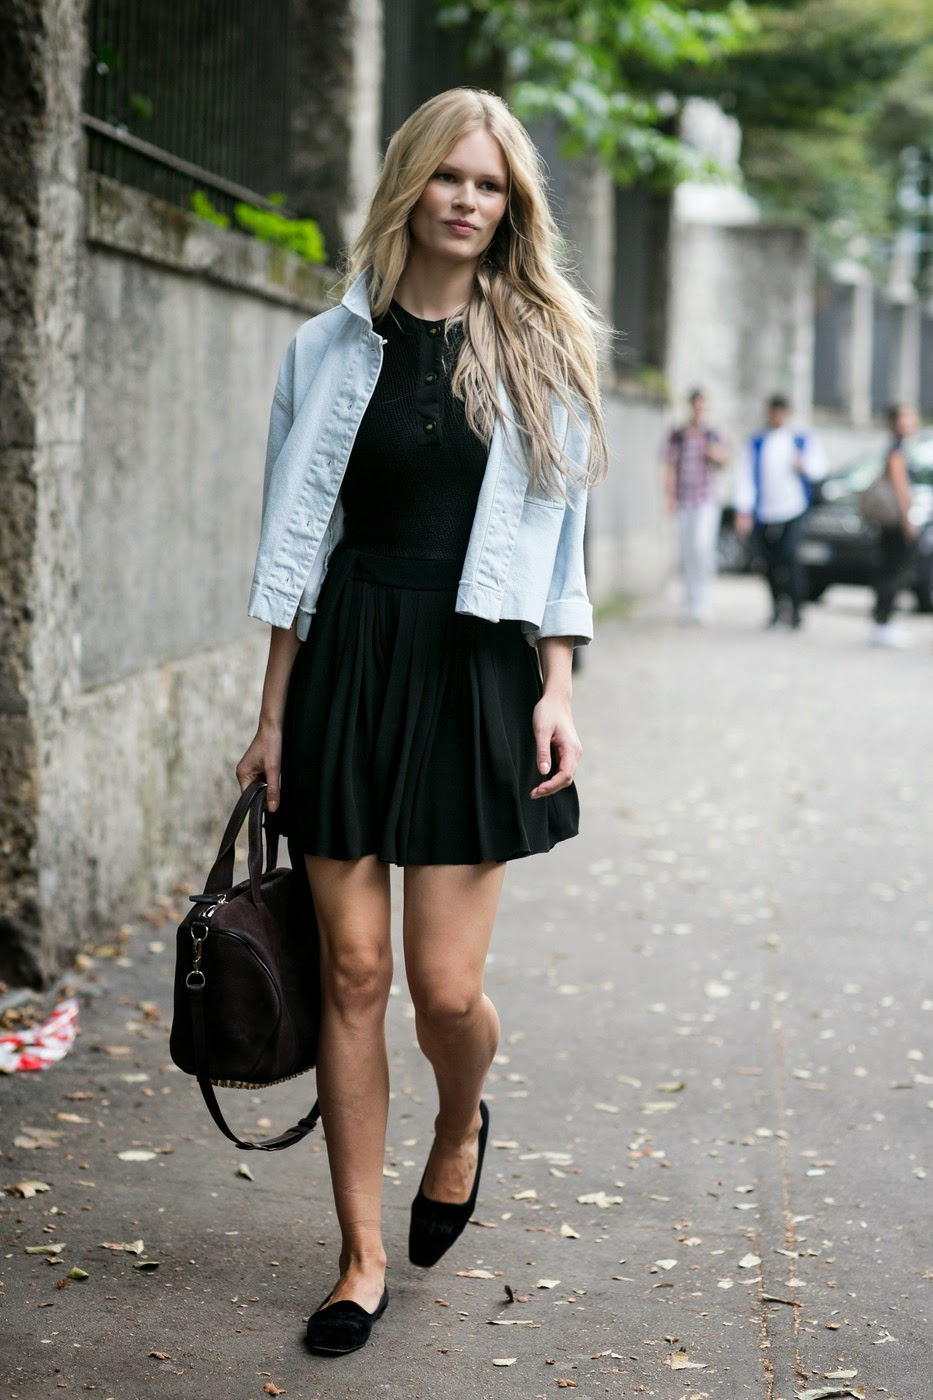 Black dress jean jacket - Model Street Style Anna Ewers In A Denim Jacket